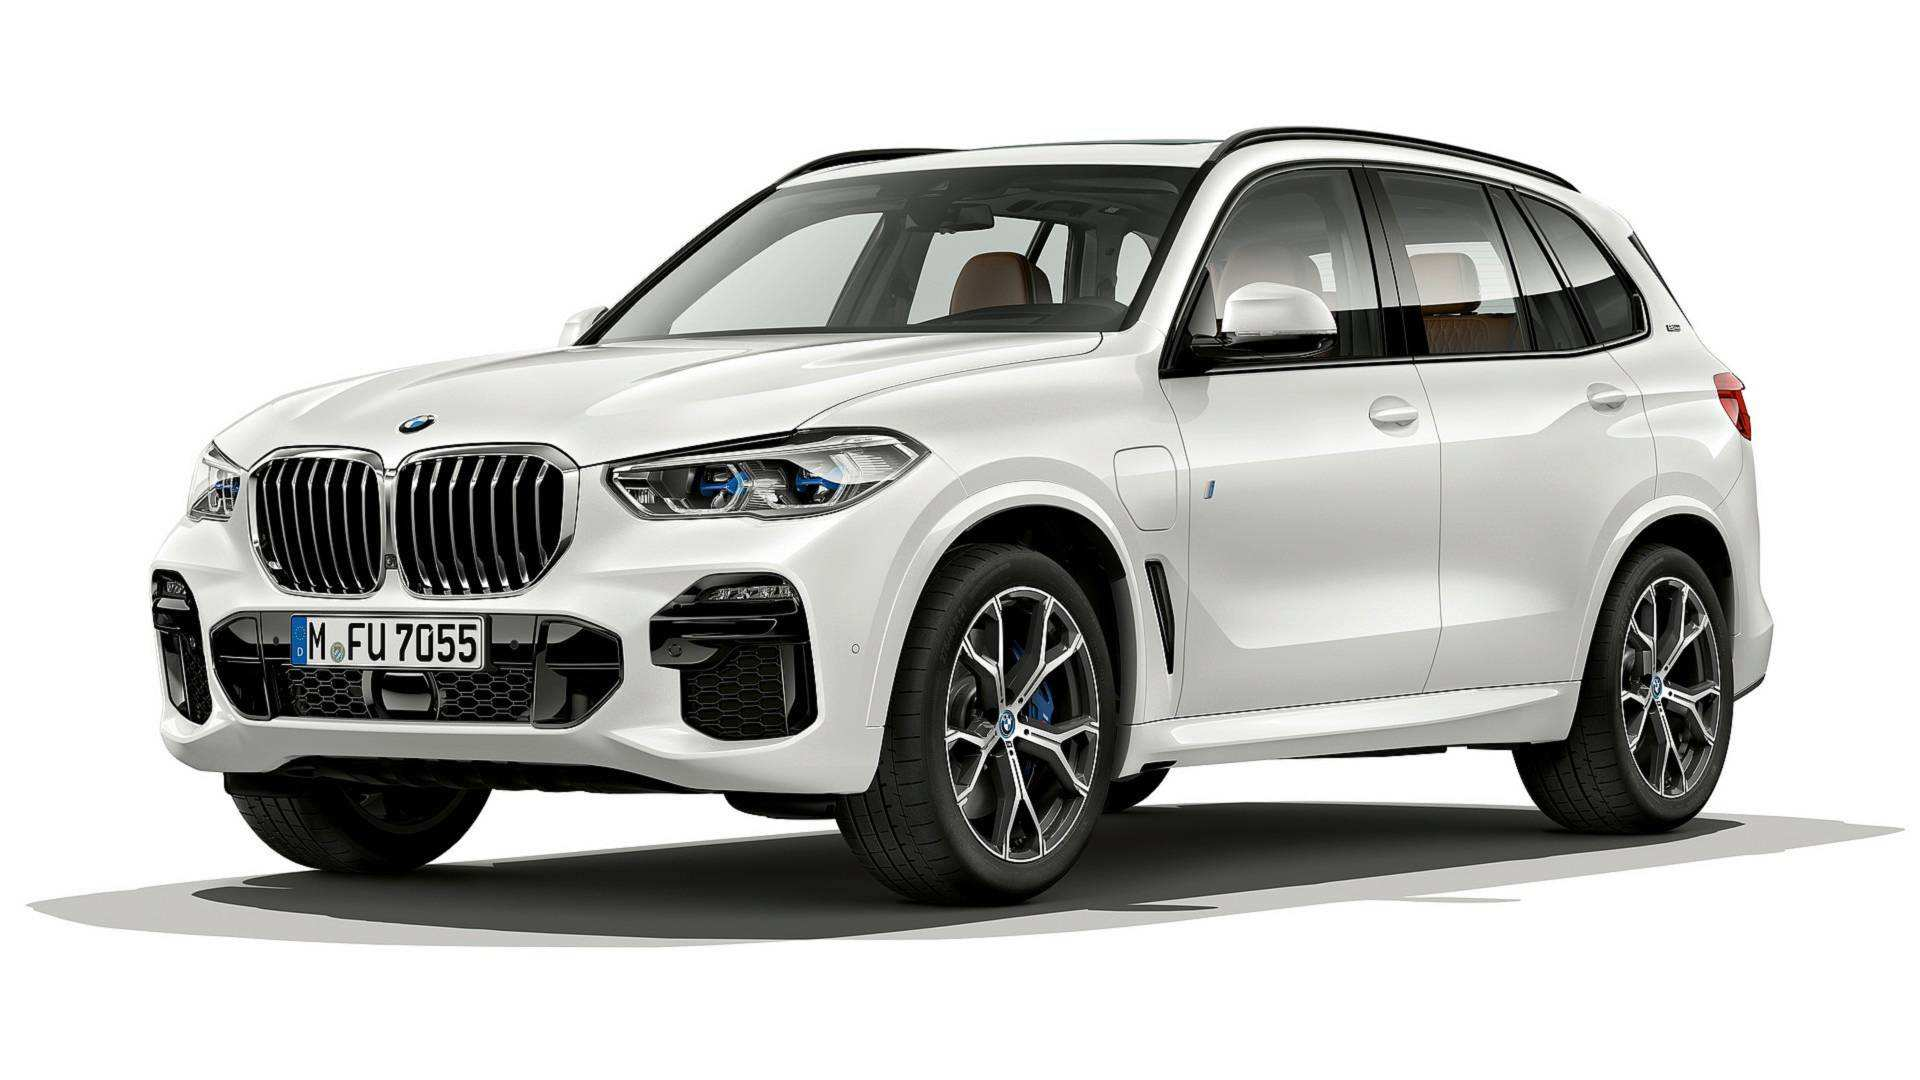 36 All New Review Of 2019 Bmw X5 Performance Images for Review Of 2019 Bmw X5 Performance